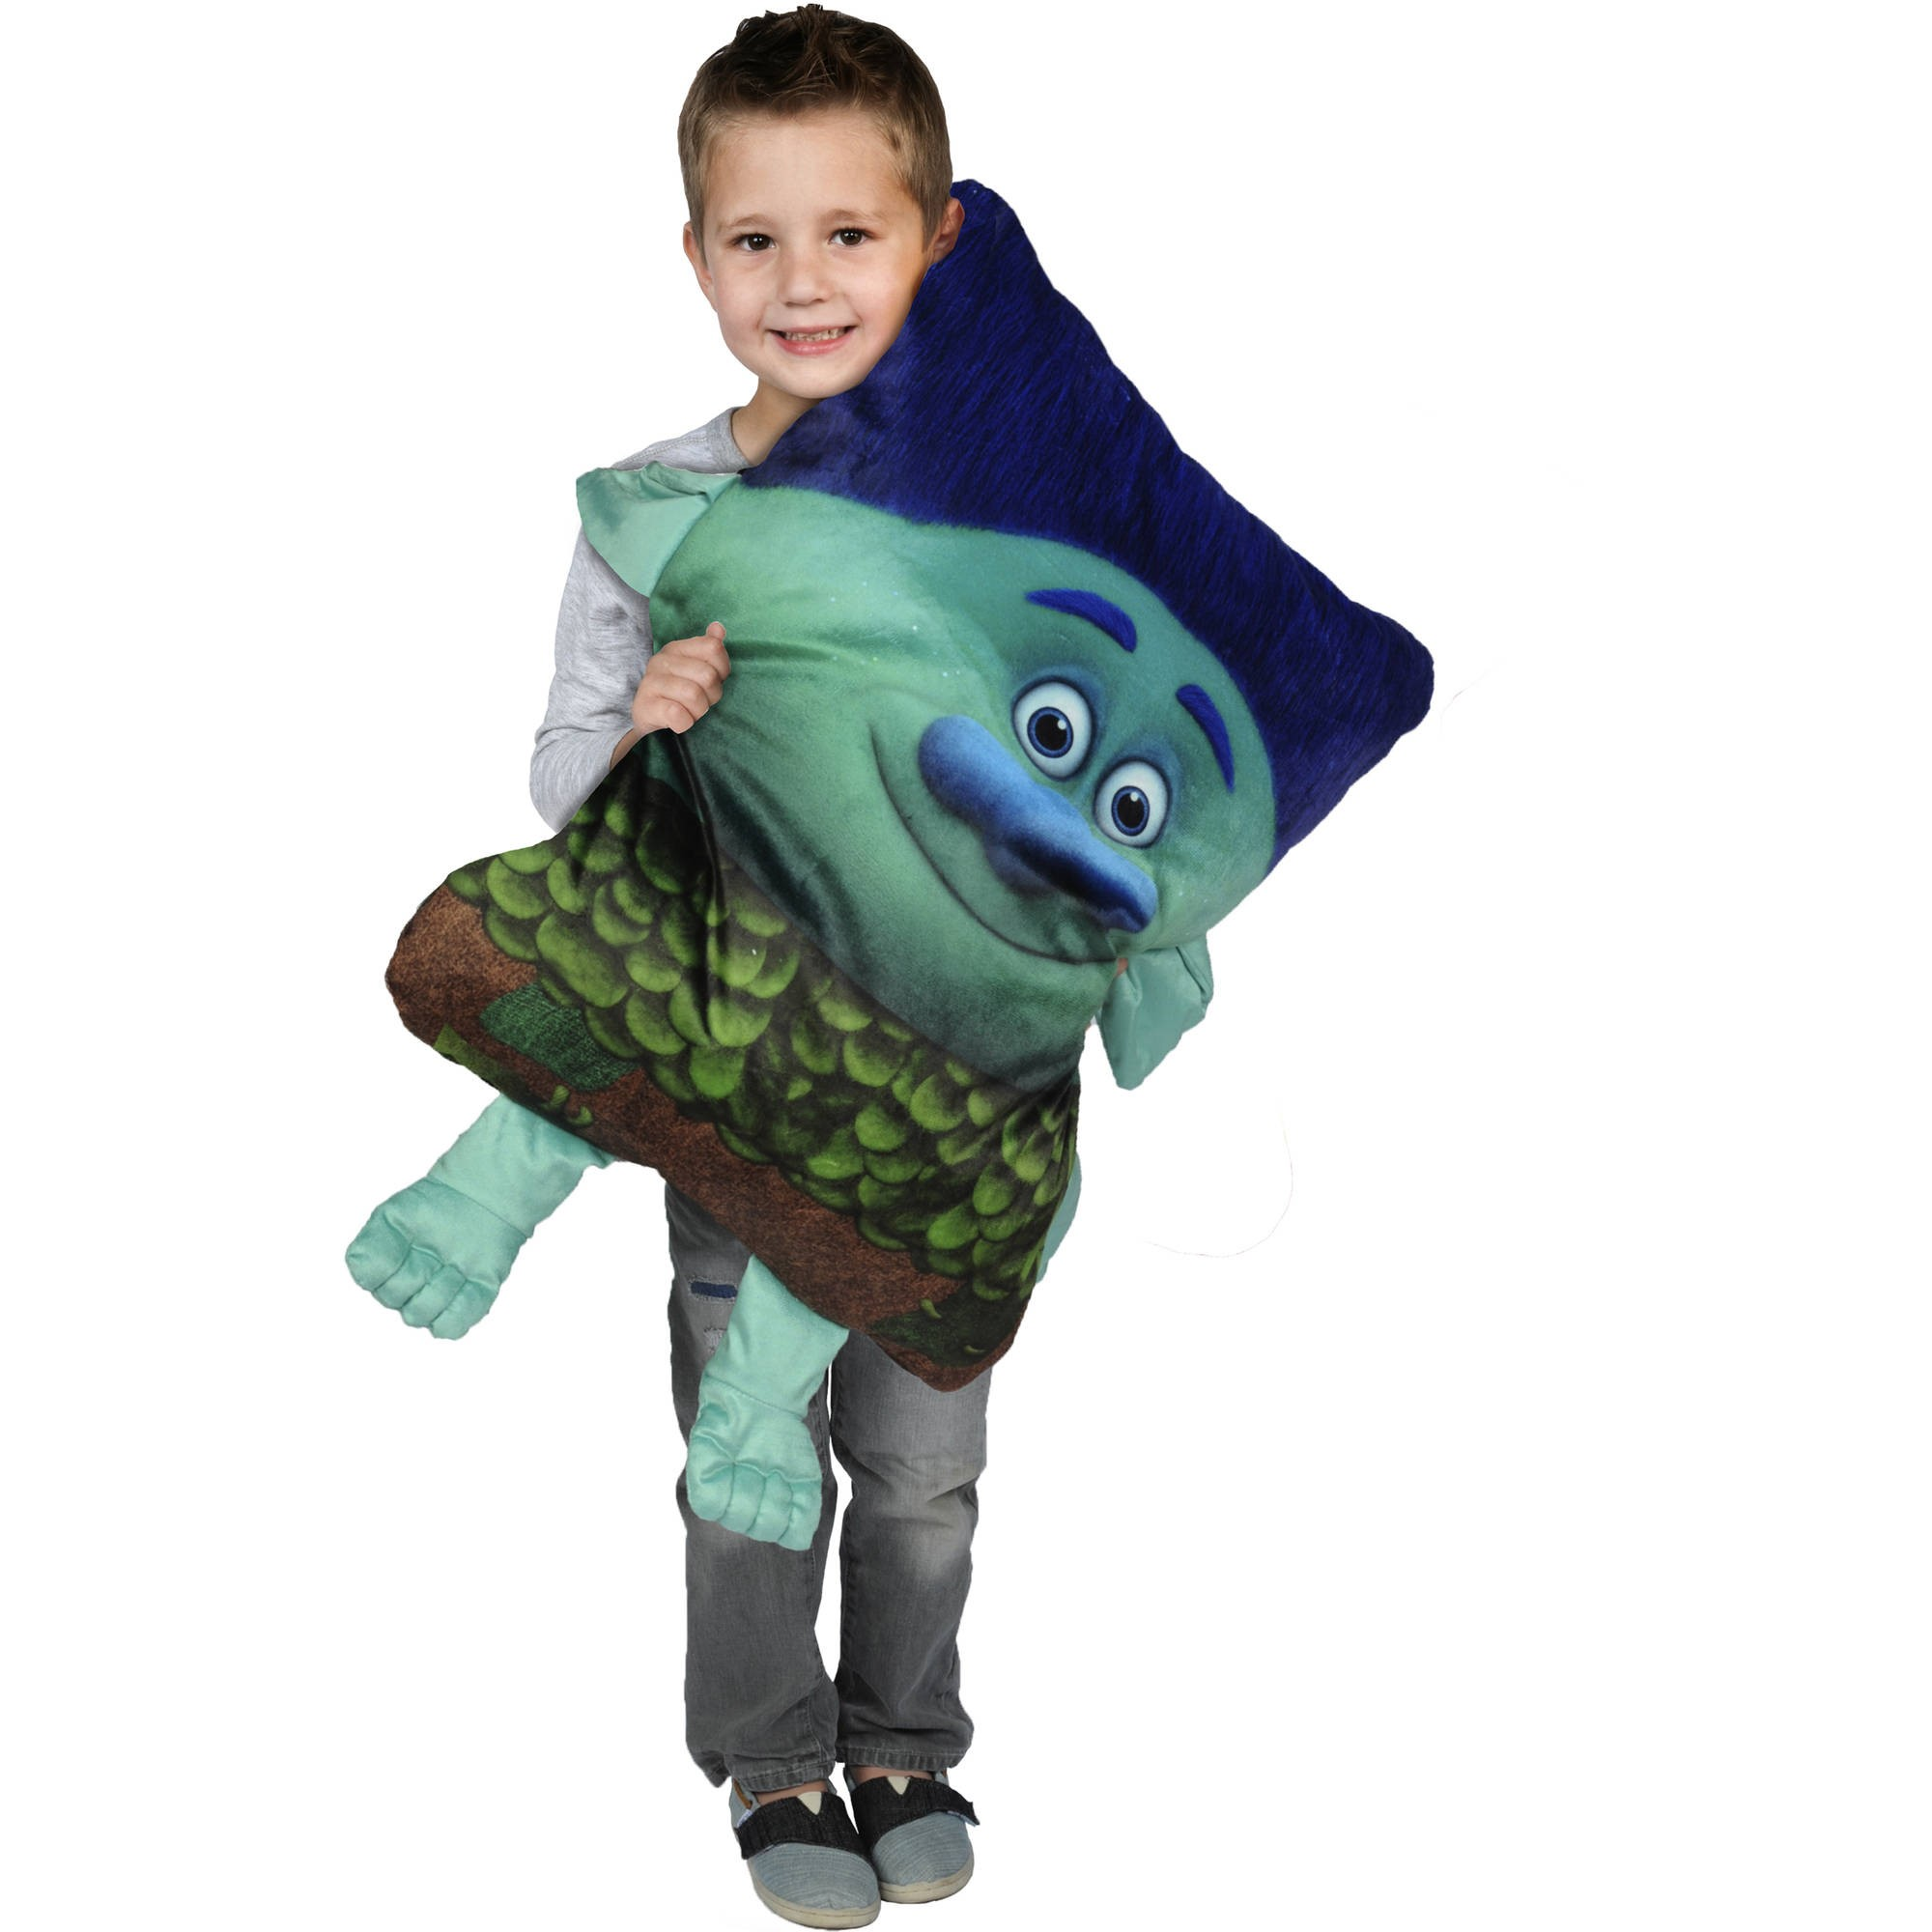 DreamWorks Trolls Branch 3D Pillow Buddy